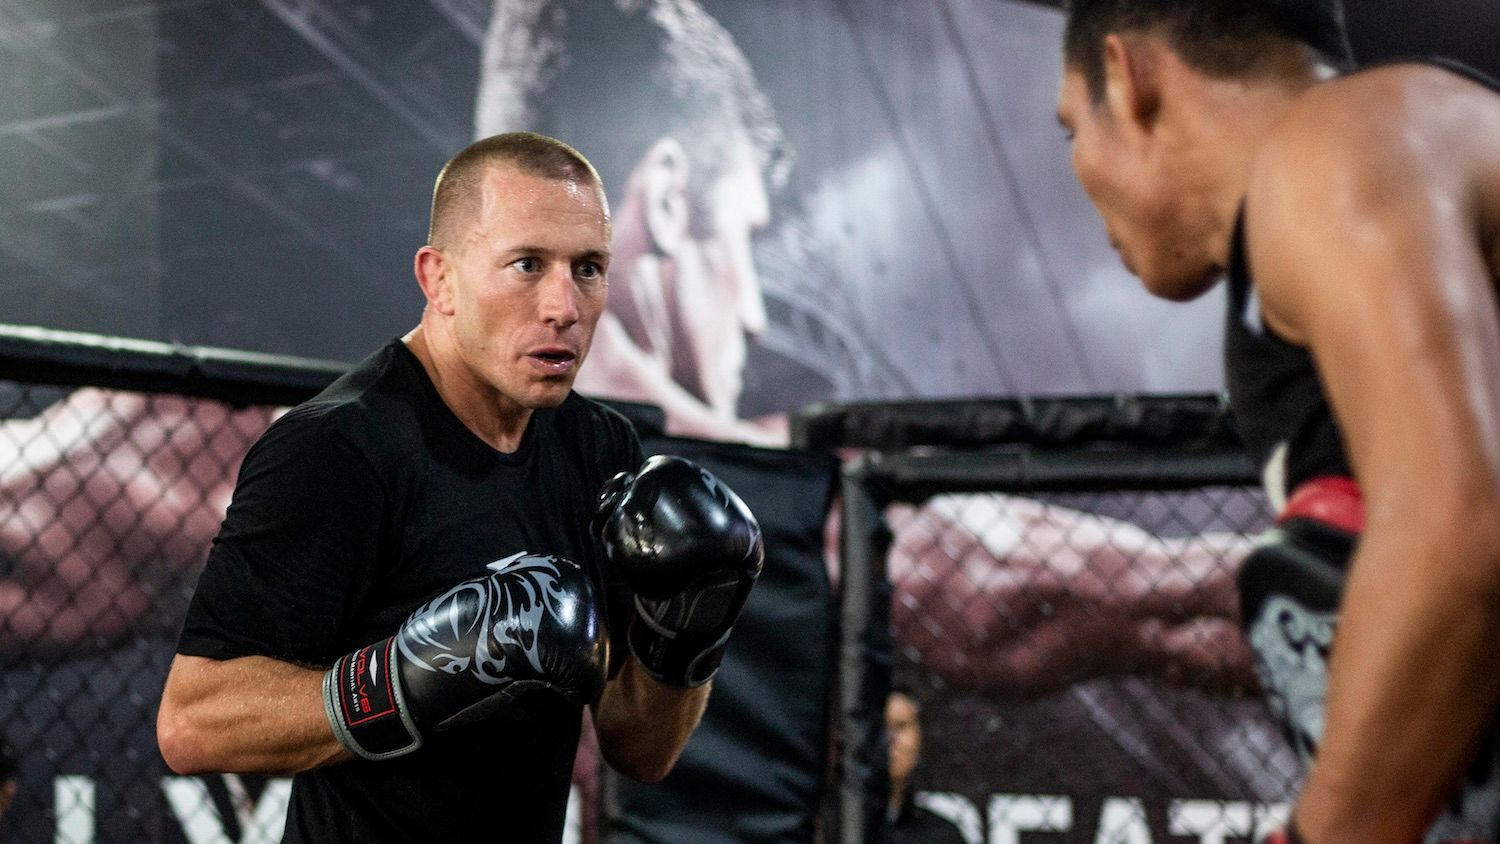 Georges St. Pierre training boxing